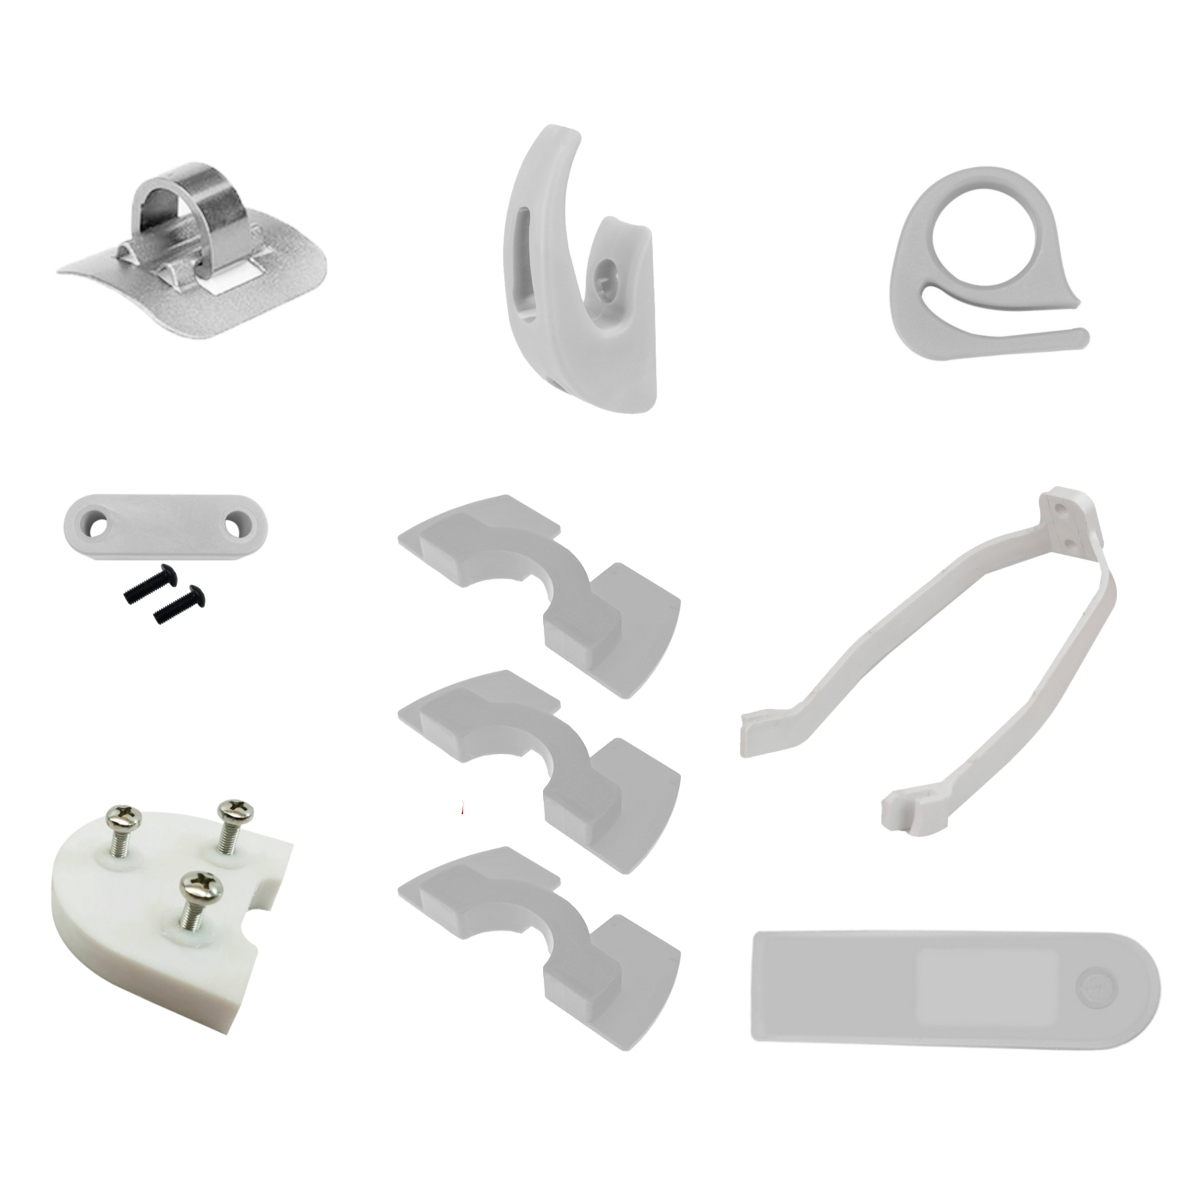 10PSC Red/Black/White Starter Kit  Scooter Accessories For Xiaomi Scooter M365/M187/PRO